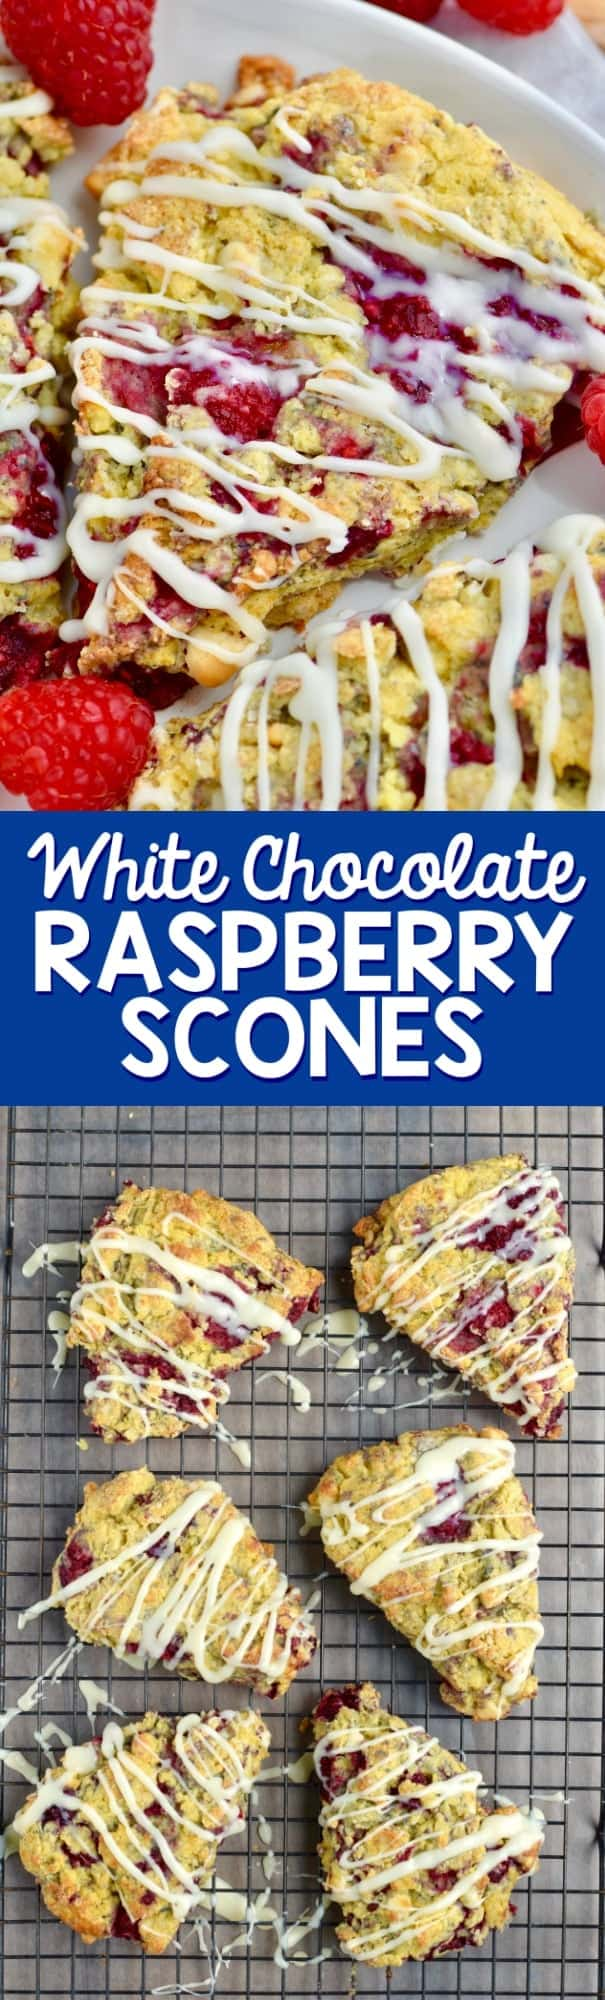 These White Chocolate Raspberry Scones are soft, moist, delicious scones! Your coffee has never been happier.